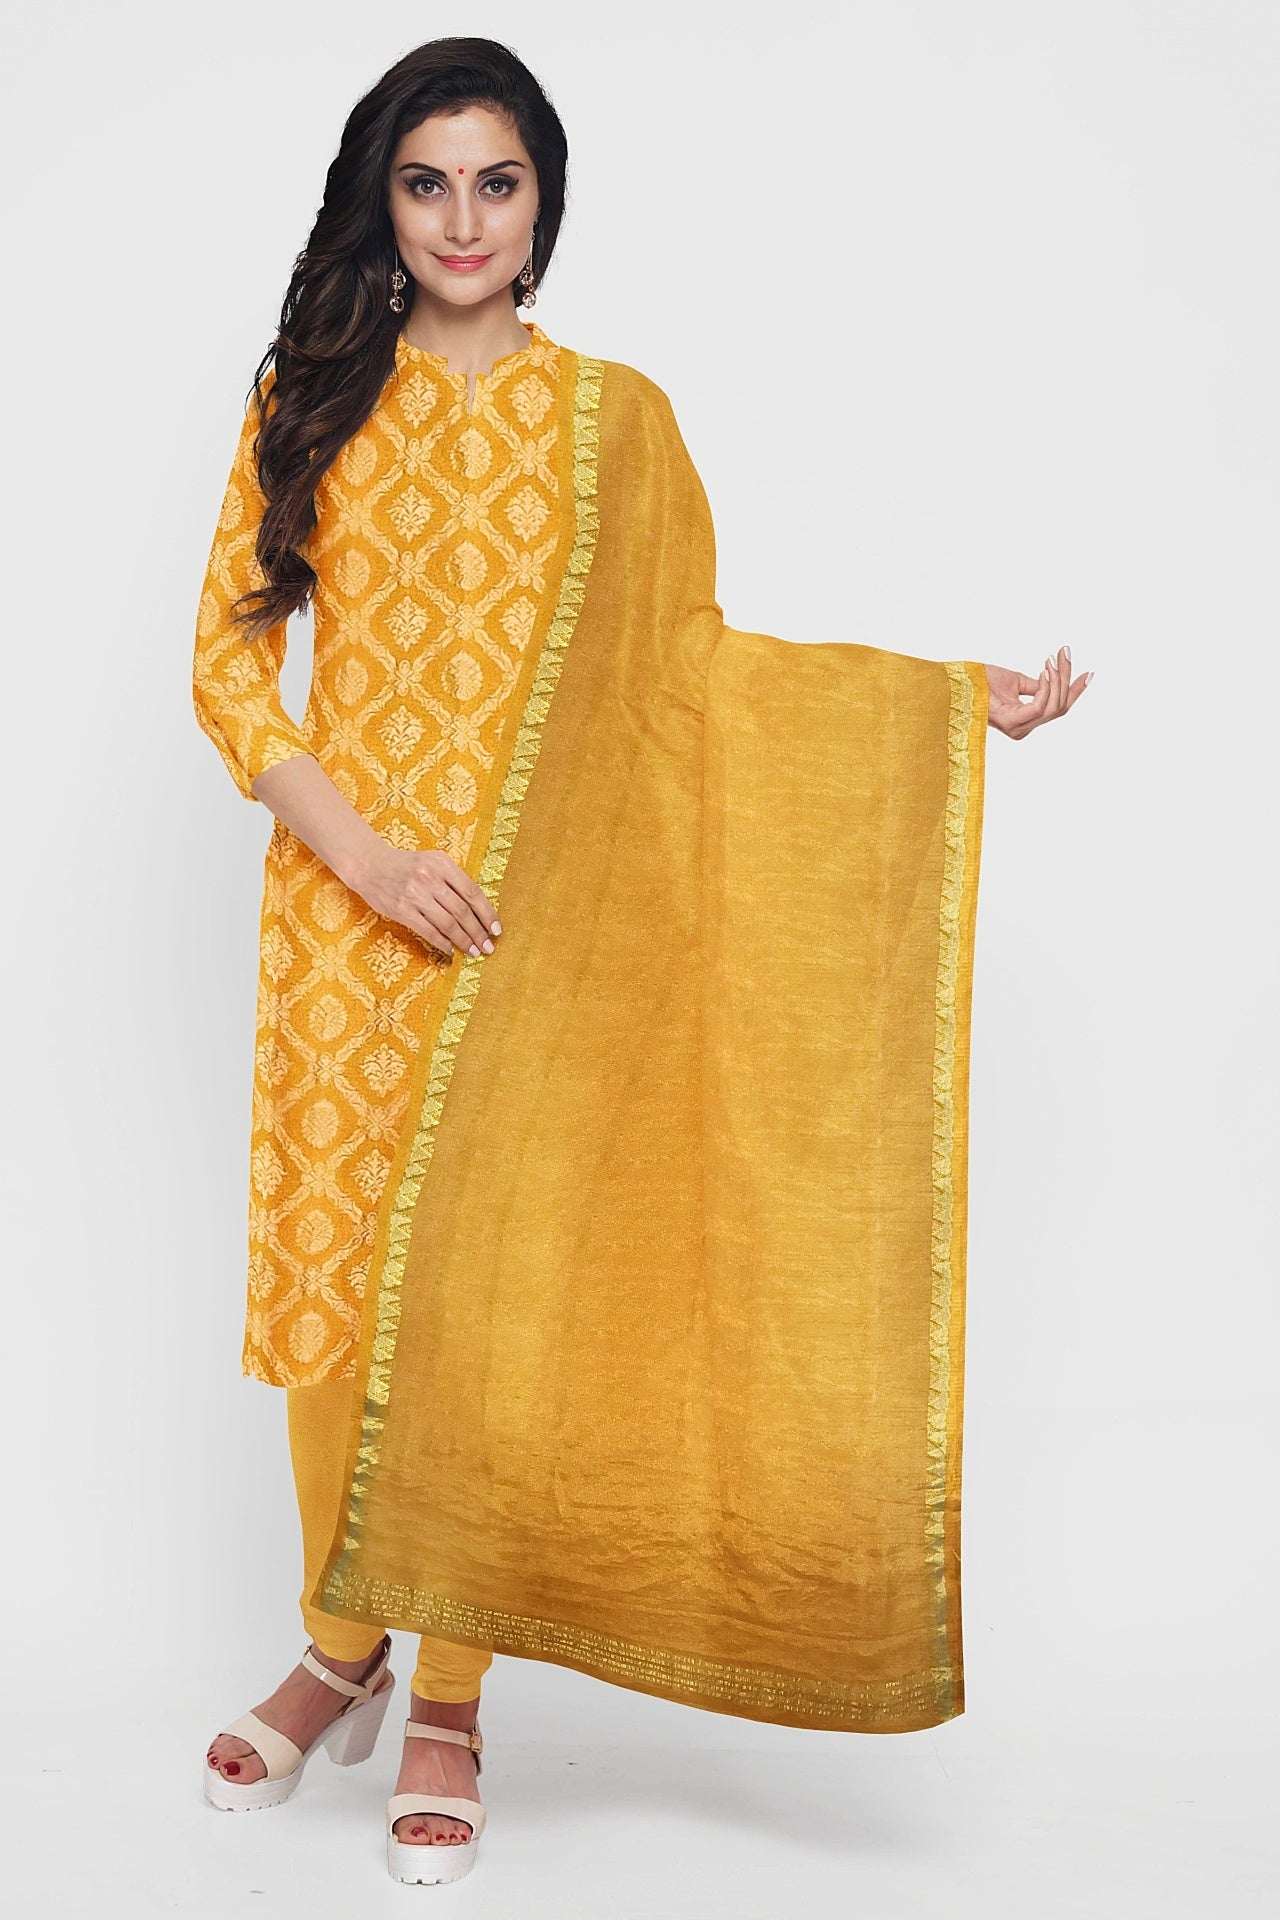 Saffron Yellow Georgette Suit Fabric Set (Set of 3)